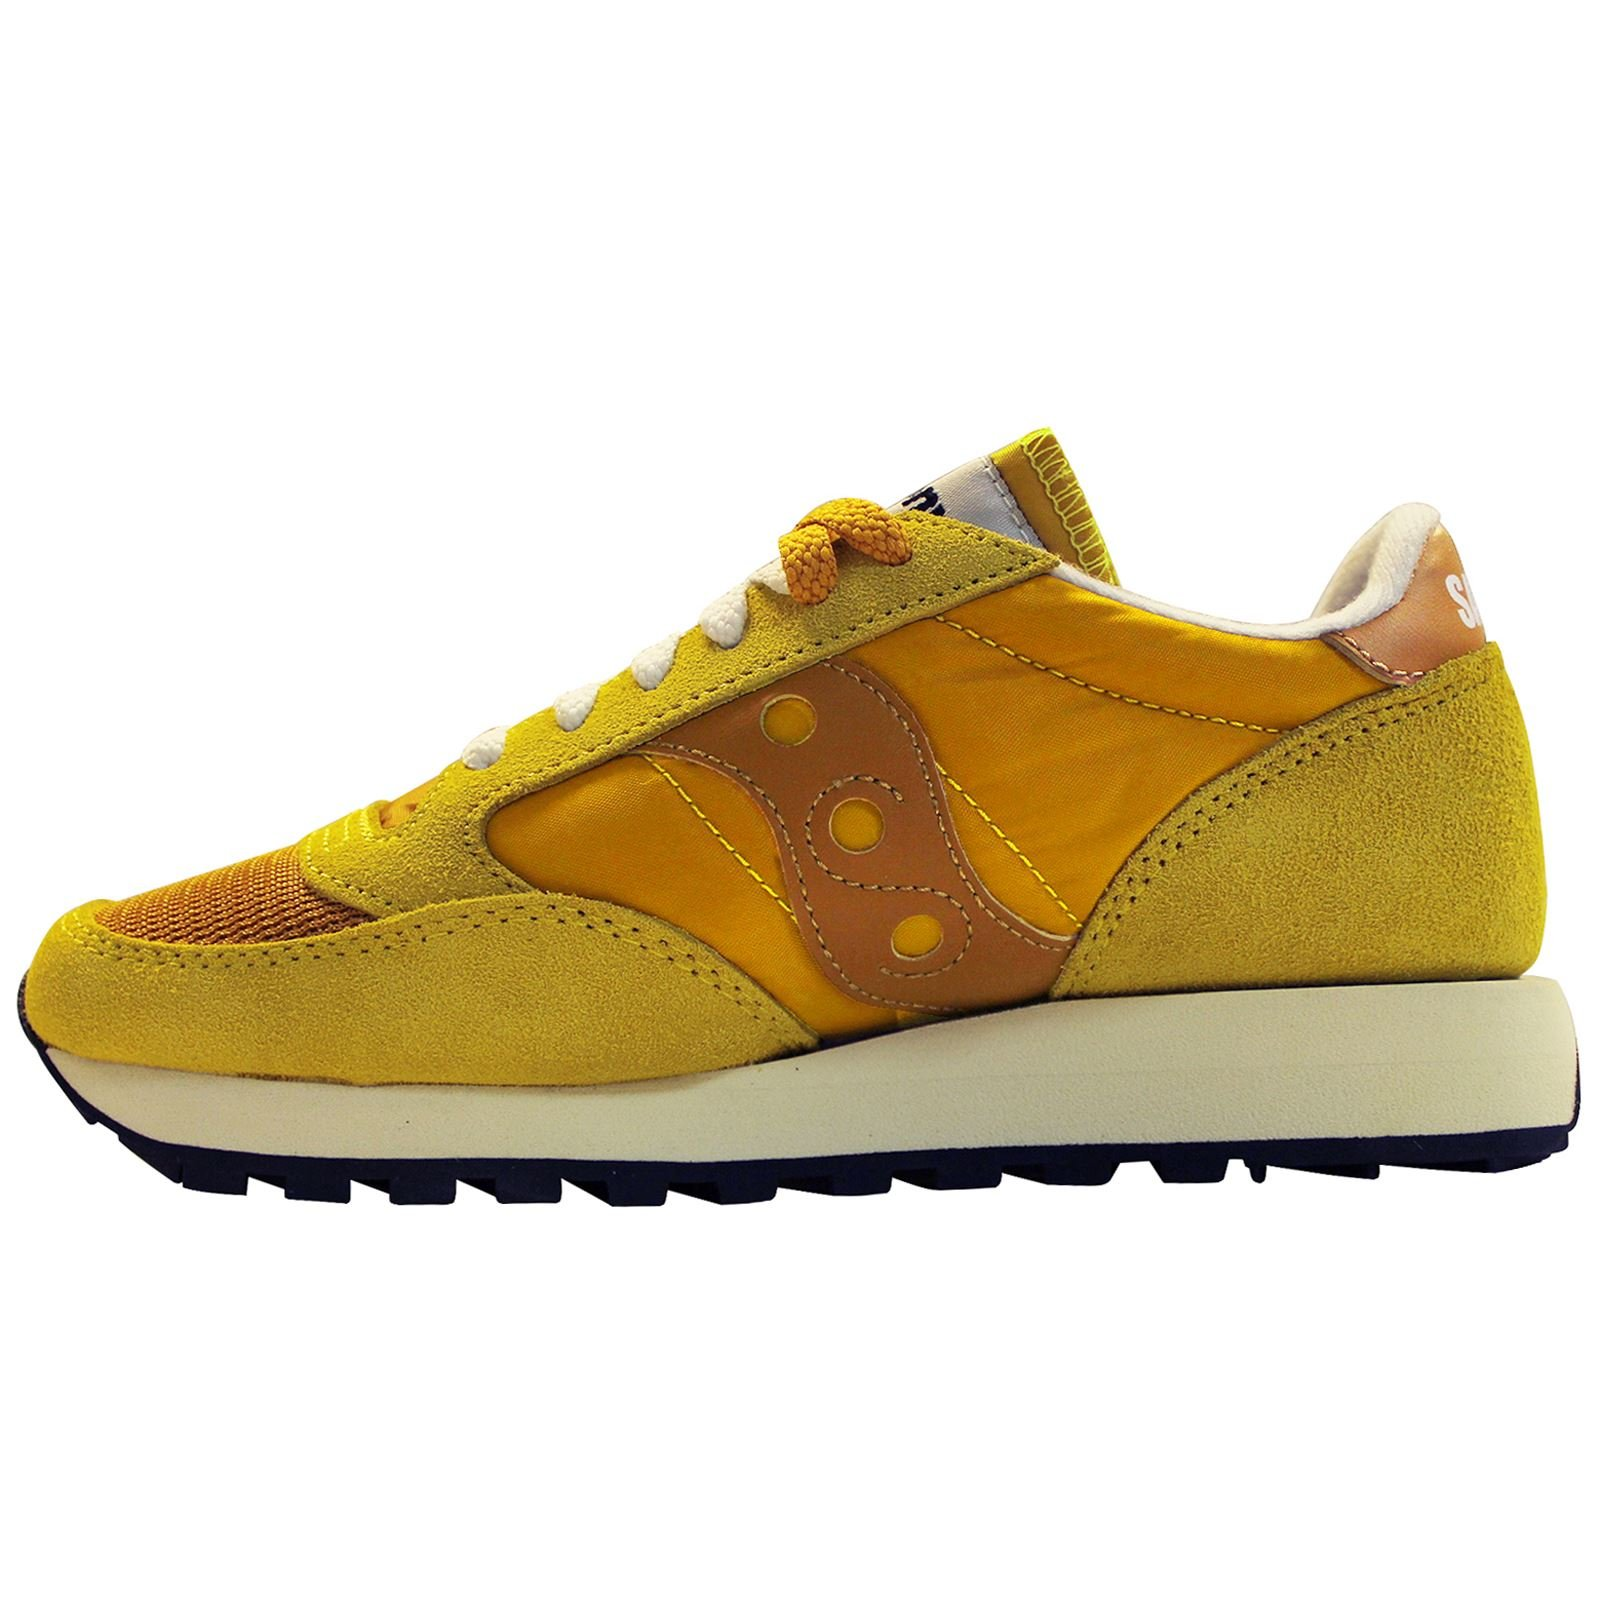 Saucony Womens Jazz Original Vintage S60368-29 Sun Suede Trainers 8 US by Saucony (Image #4)